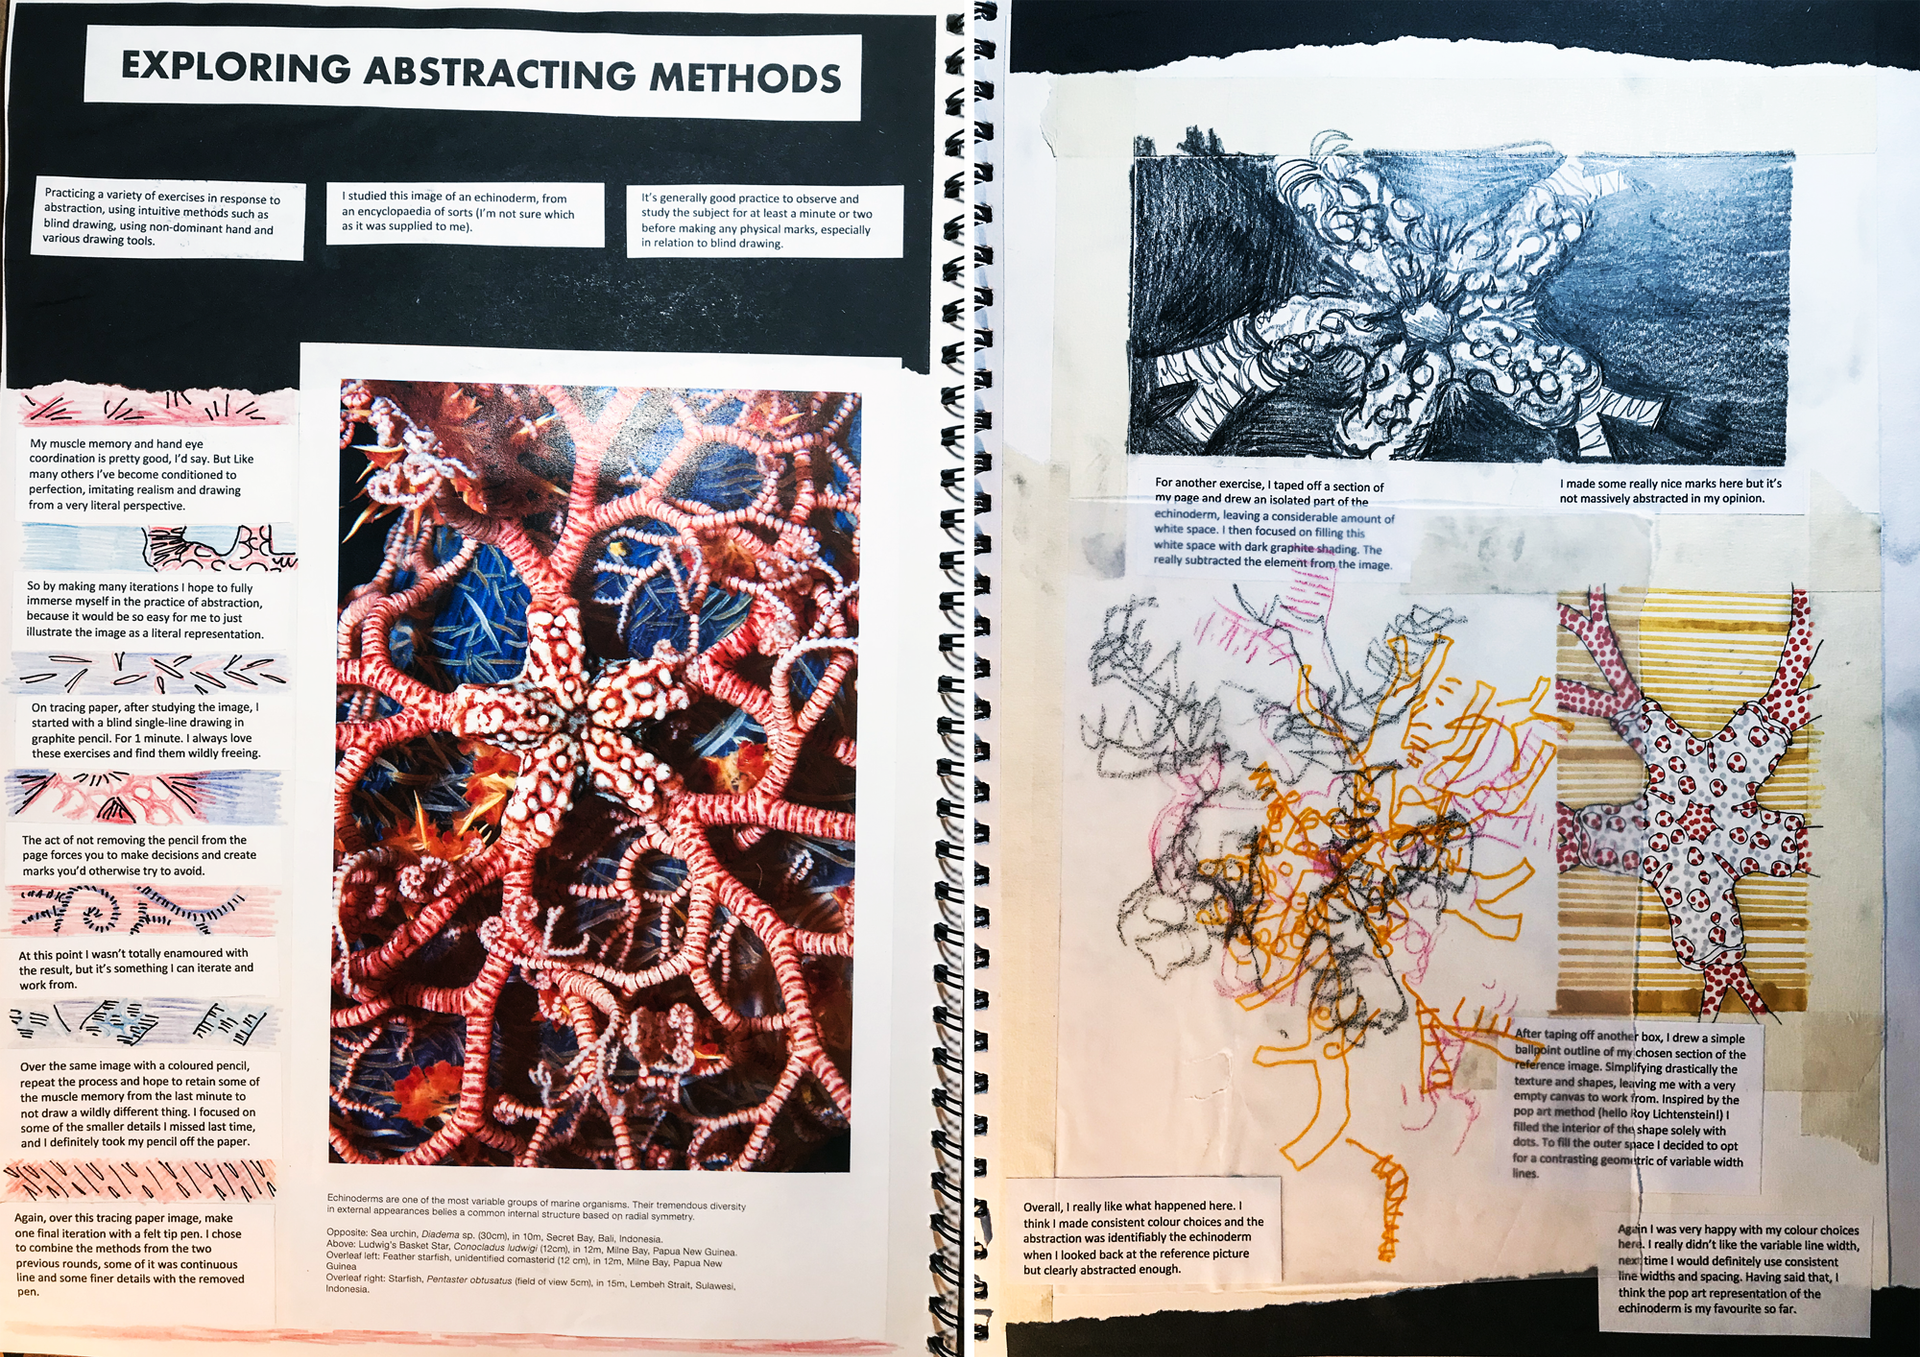 Abstracting Methods